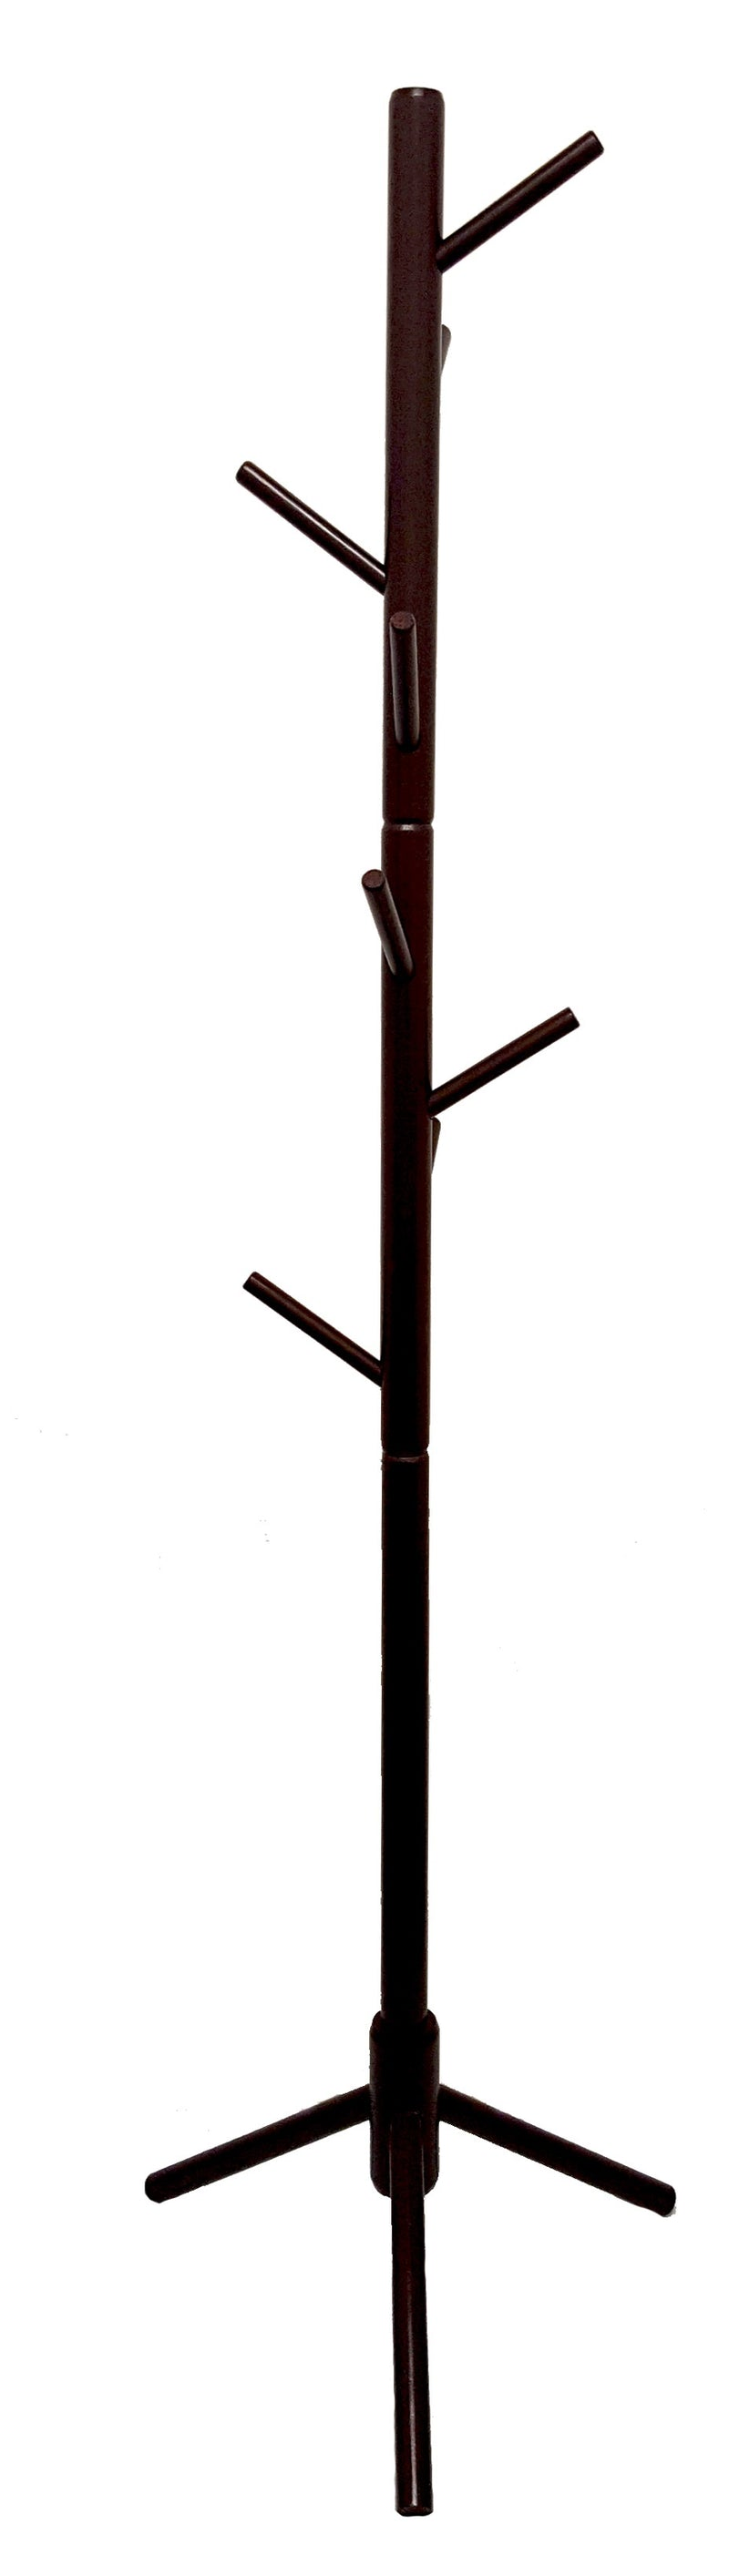 Brown Wooden Coat Stand Rack Clothes Hanger Hat Tree Vintage Jacket Bag Umbrella